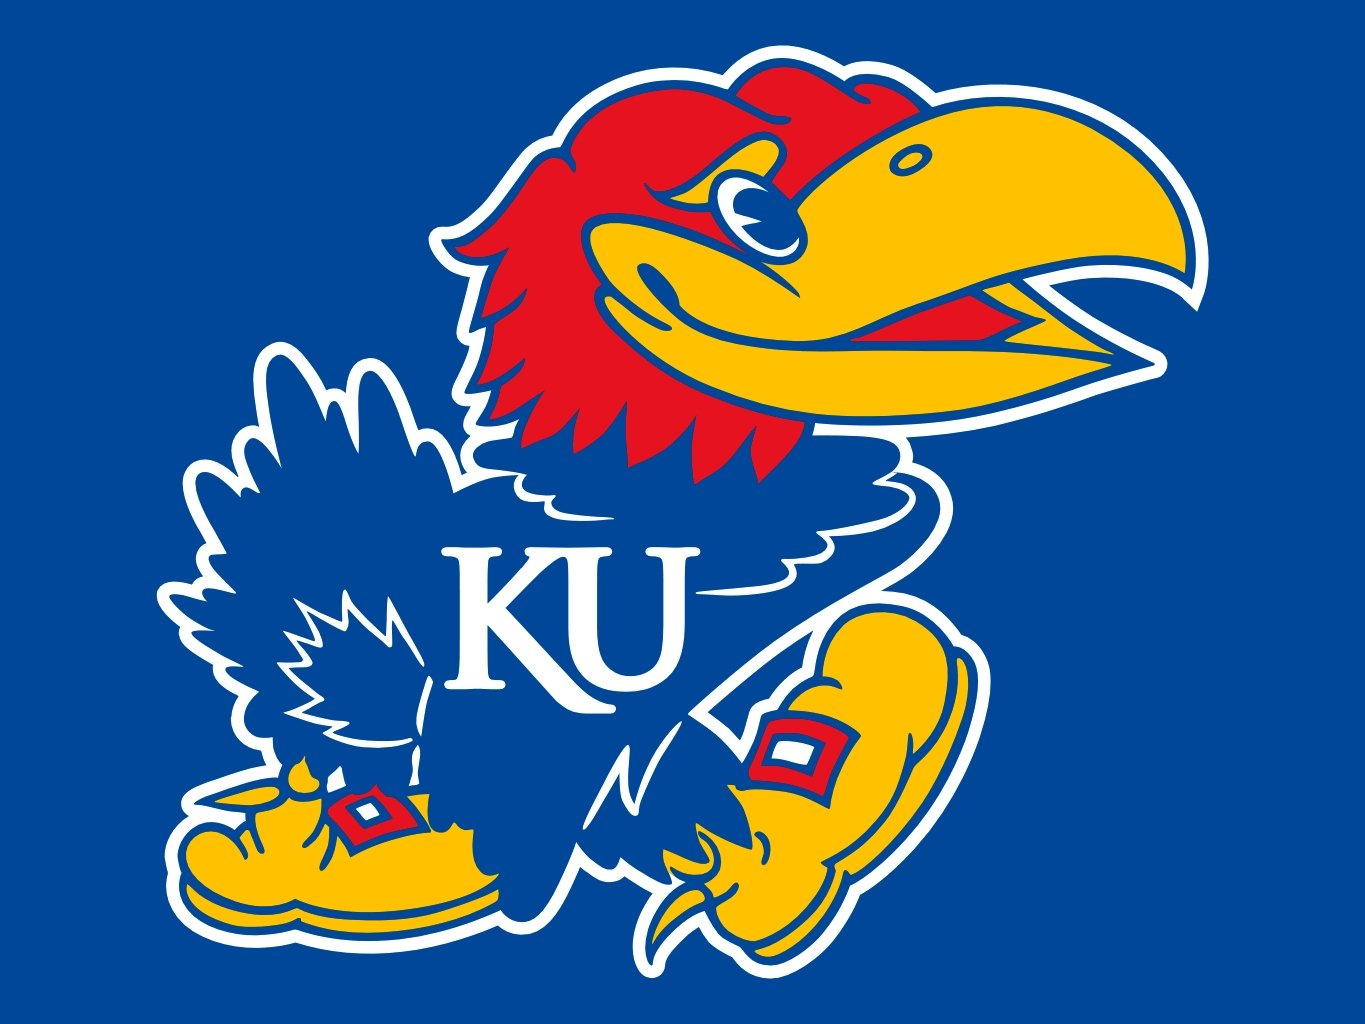 KU teams won in football, men's and women's basketball and women's volleyball over the weekend.